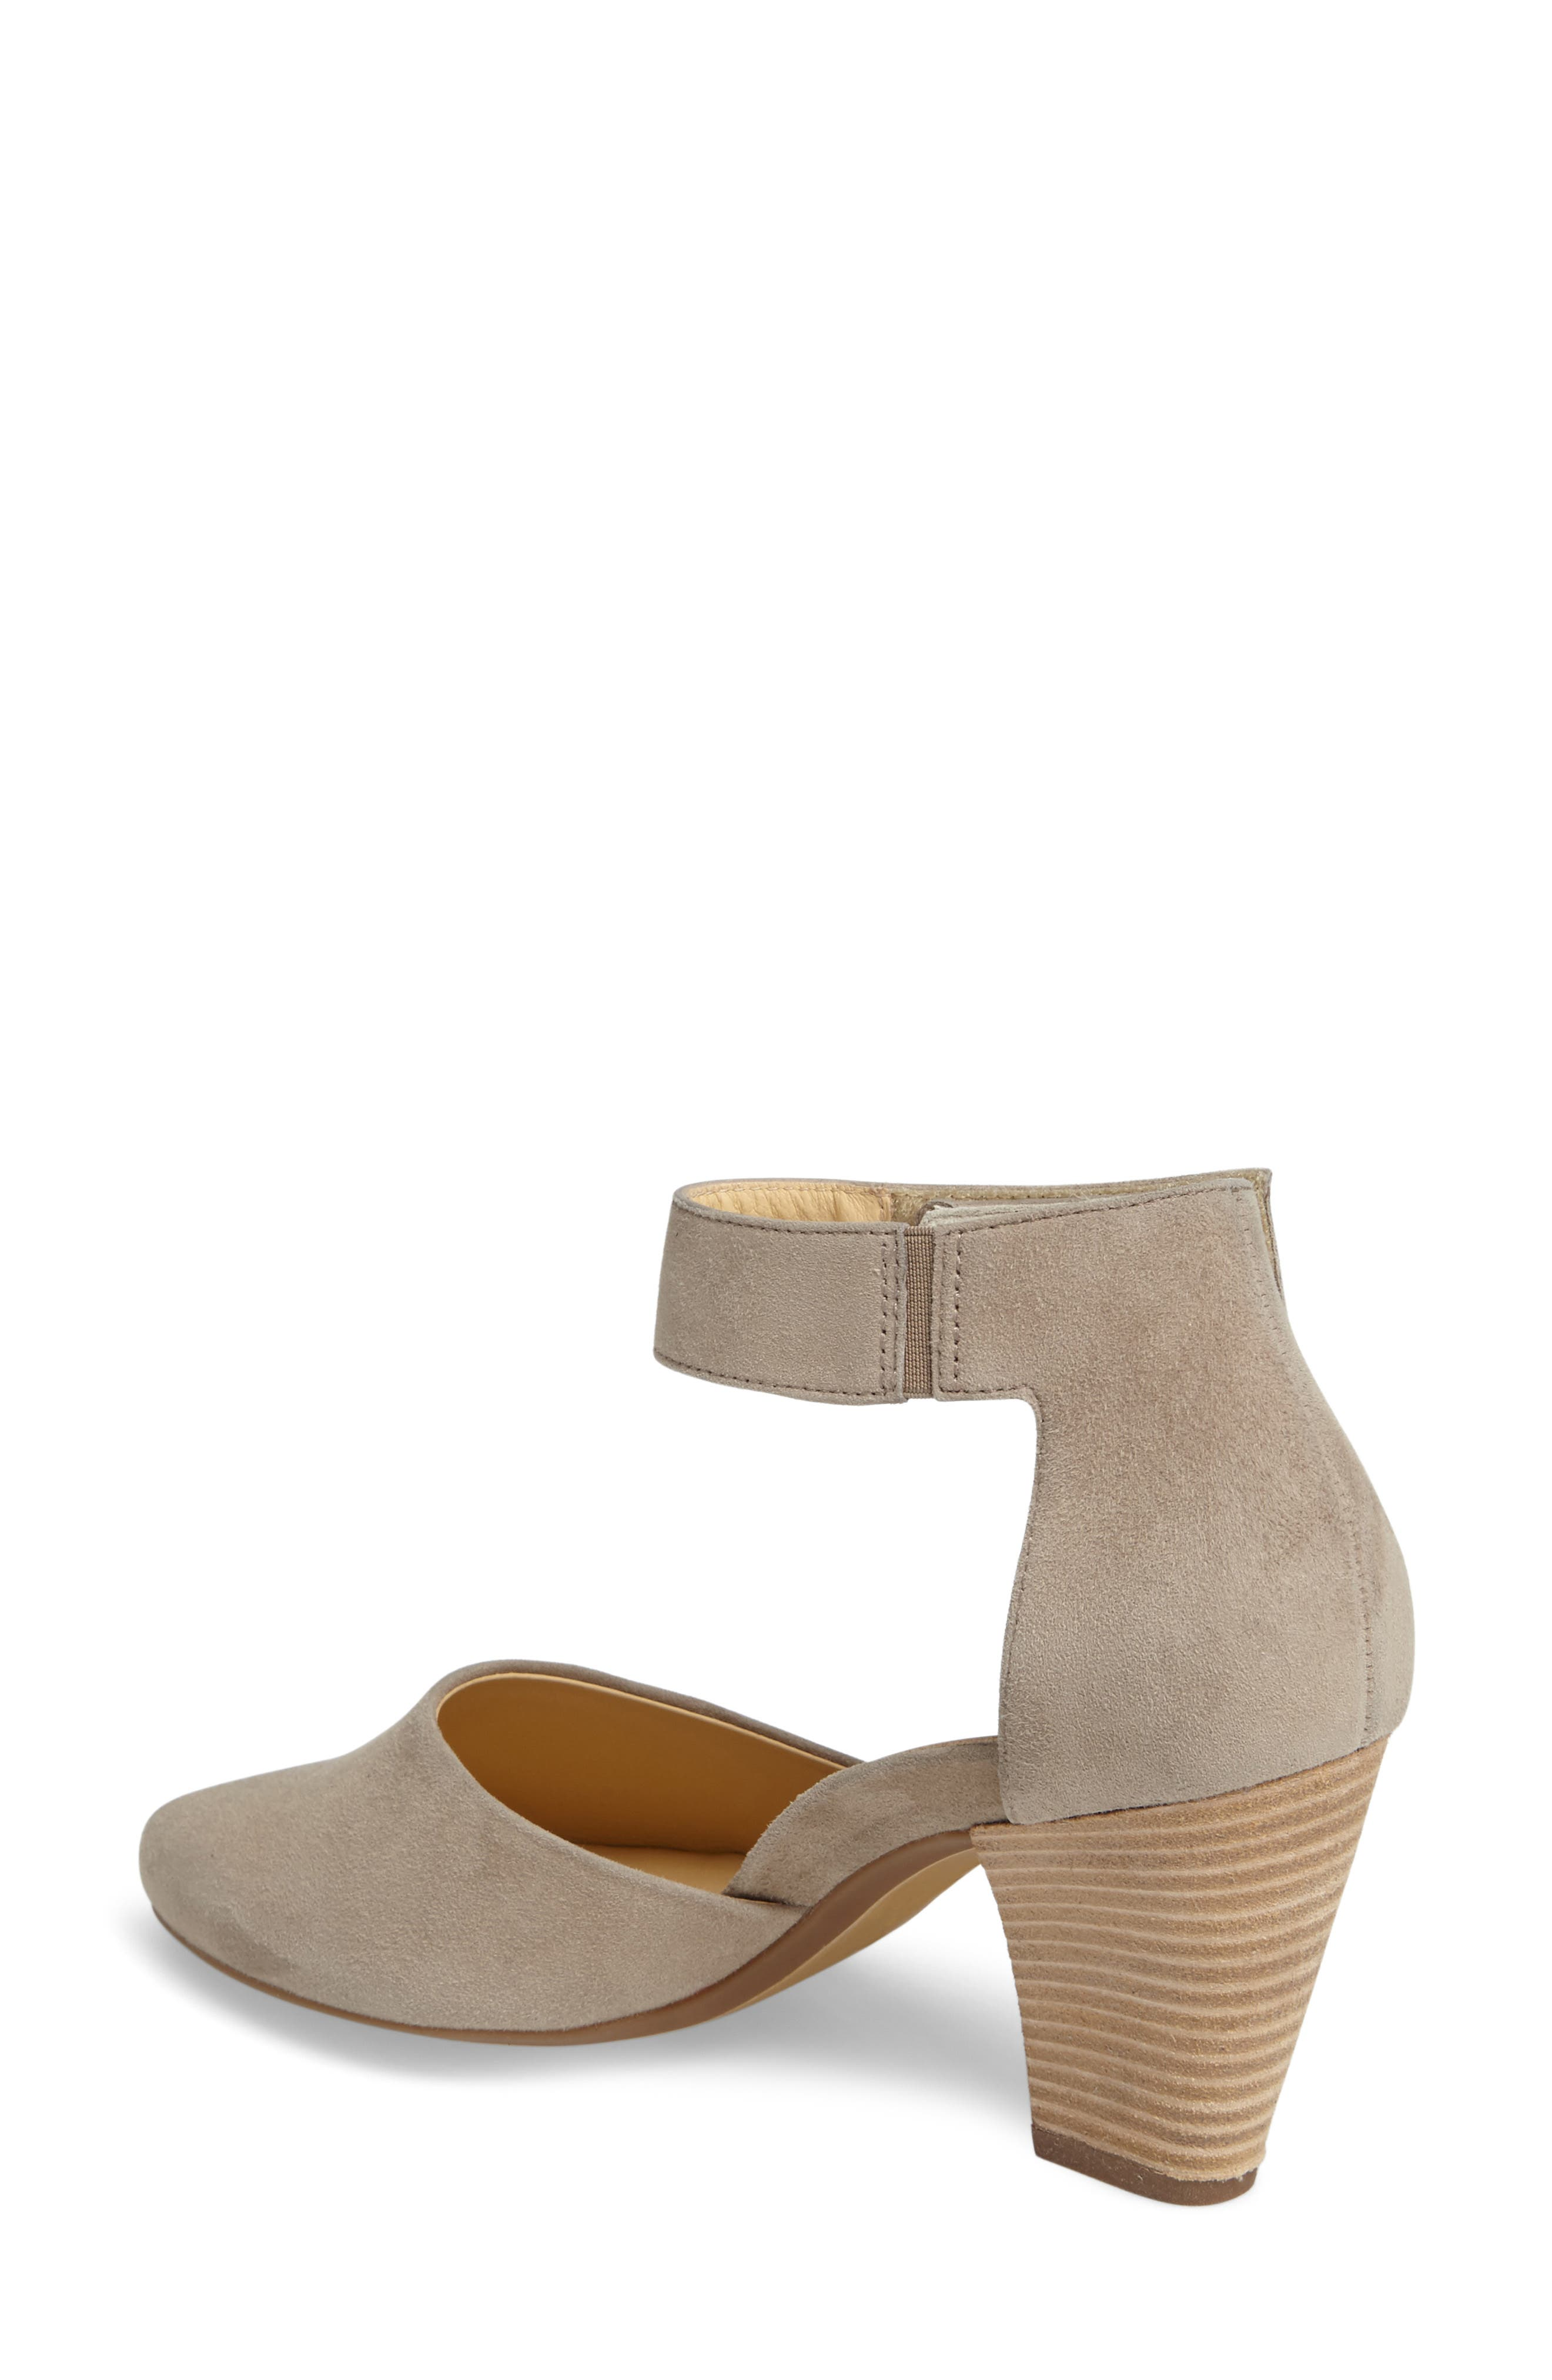 Noreen Pump,                             Alternate thumbnail 2, color,                             Taupe Suede